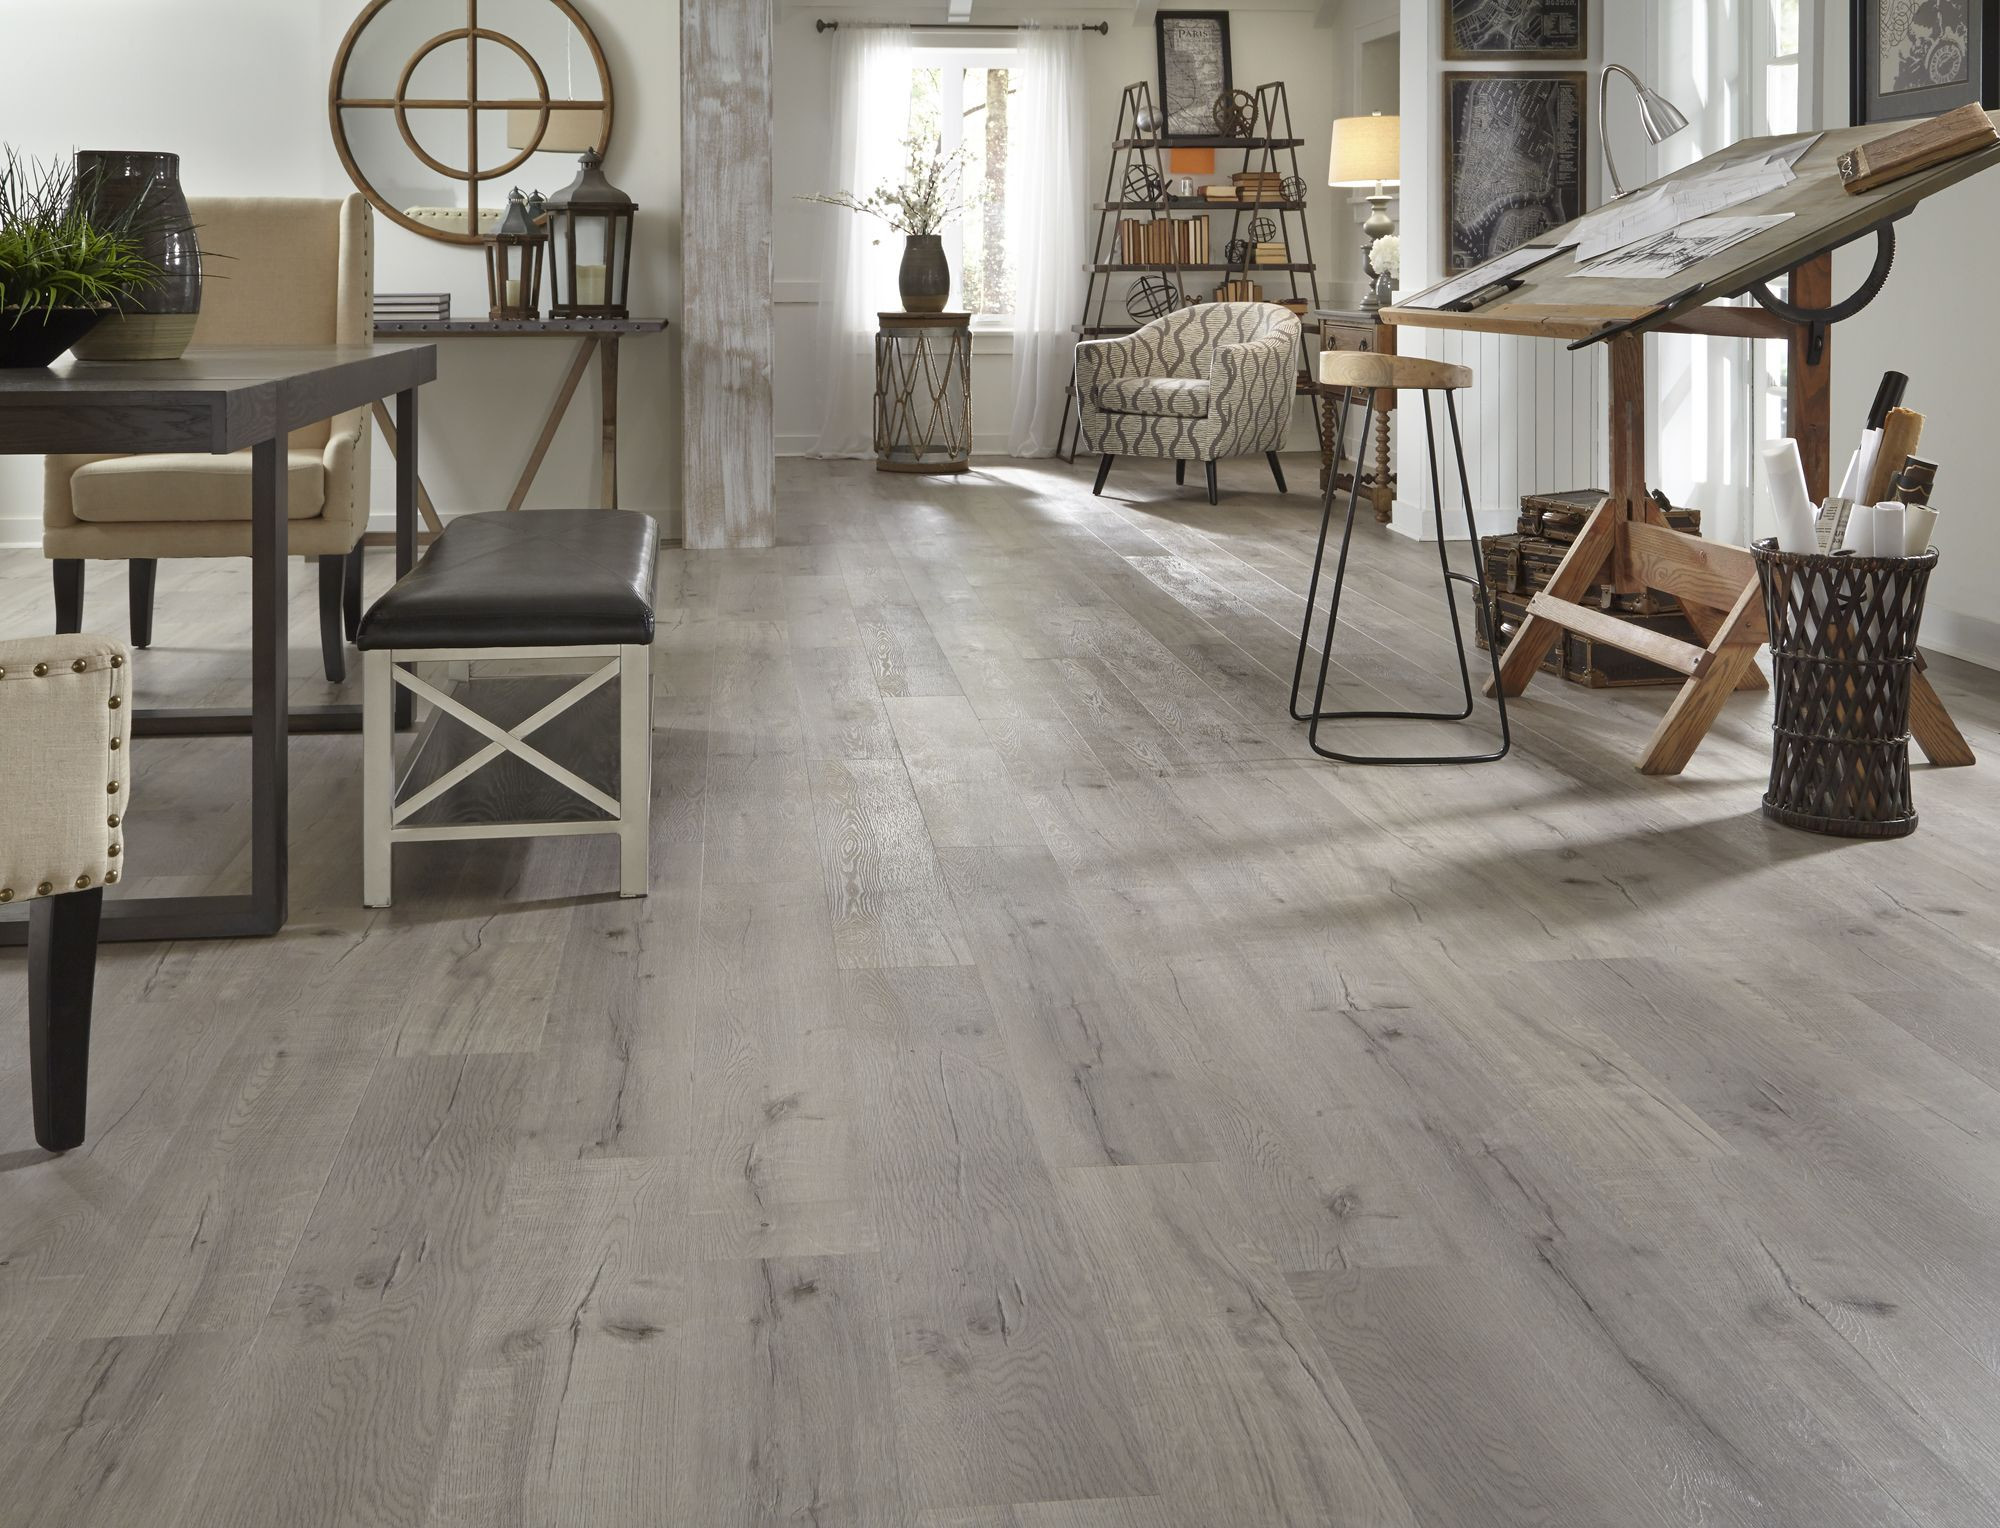 hickory hardwood flooring cost of this fall flooring season see 100 new flooring styles like driftwood throughout this fall flooring season see 100 new flooring styles like driftwood hickory evp its part of a new line of waterproof flooring thats ideal for any space